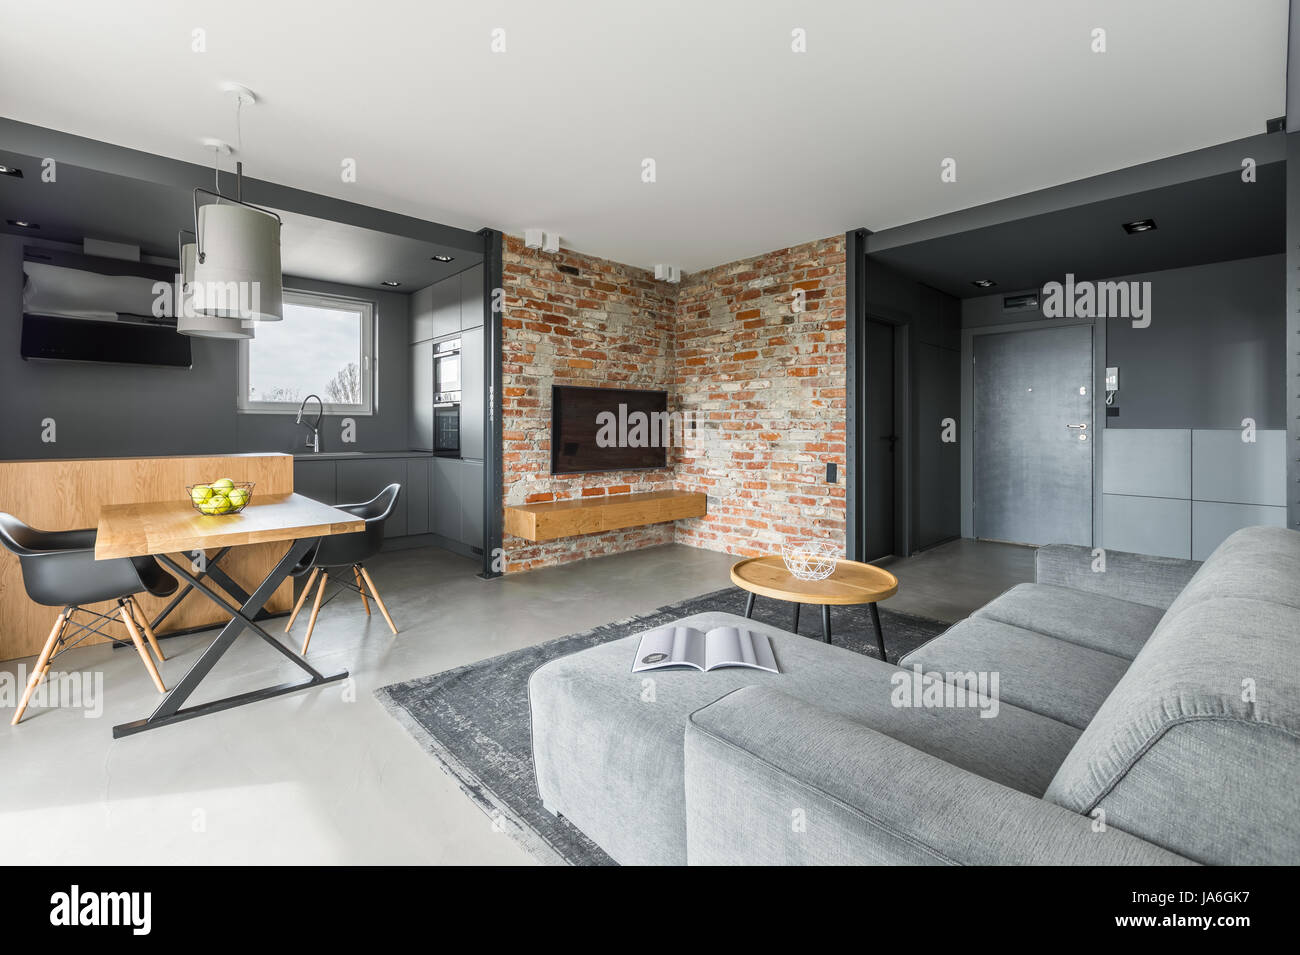 Salon Cuisine Style Industriel gray and white apartment in industrial style with open